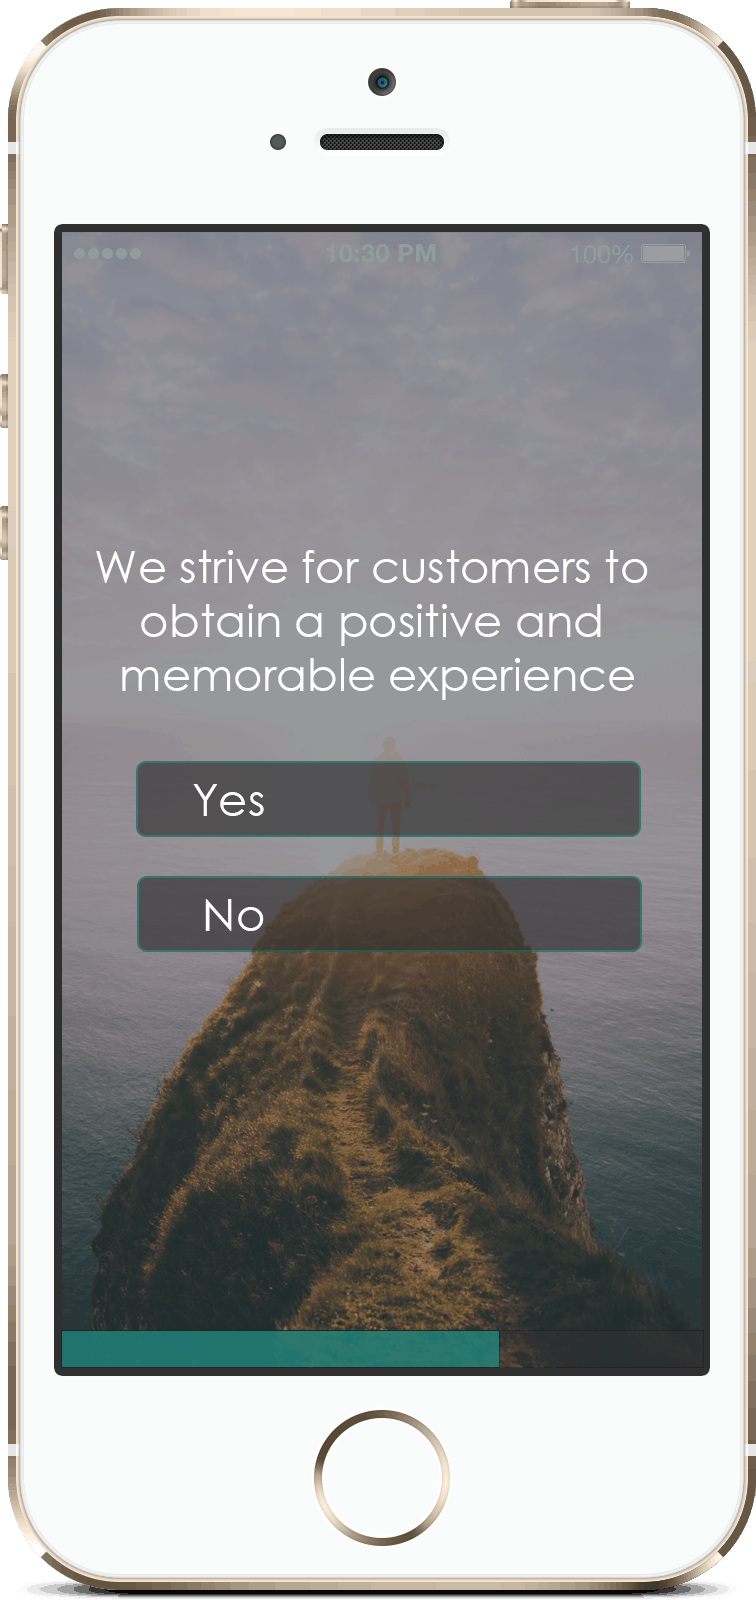 Mobile - Customer experience